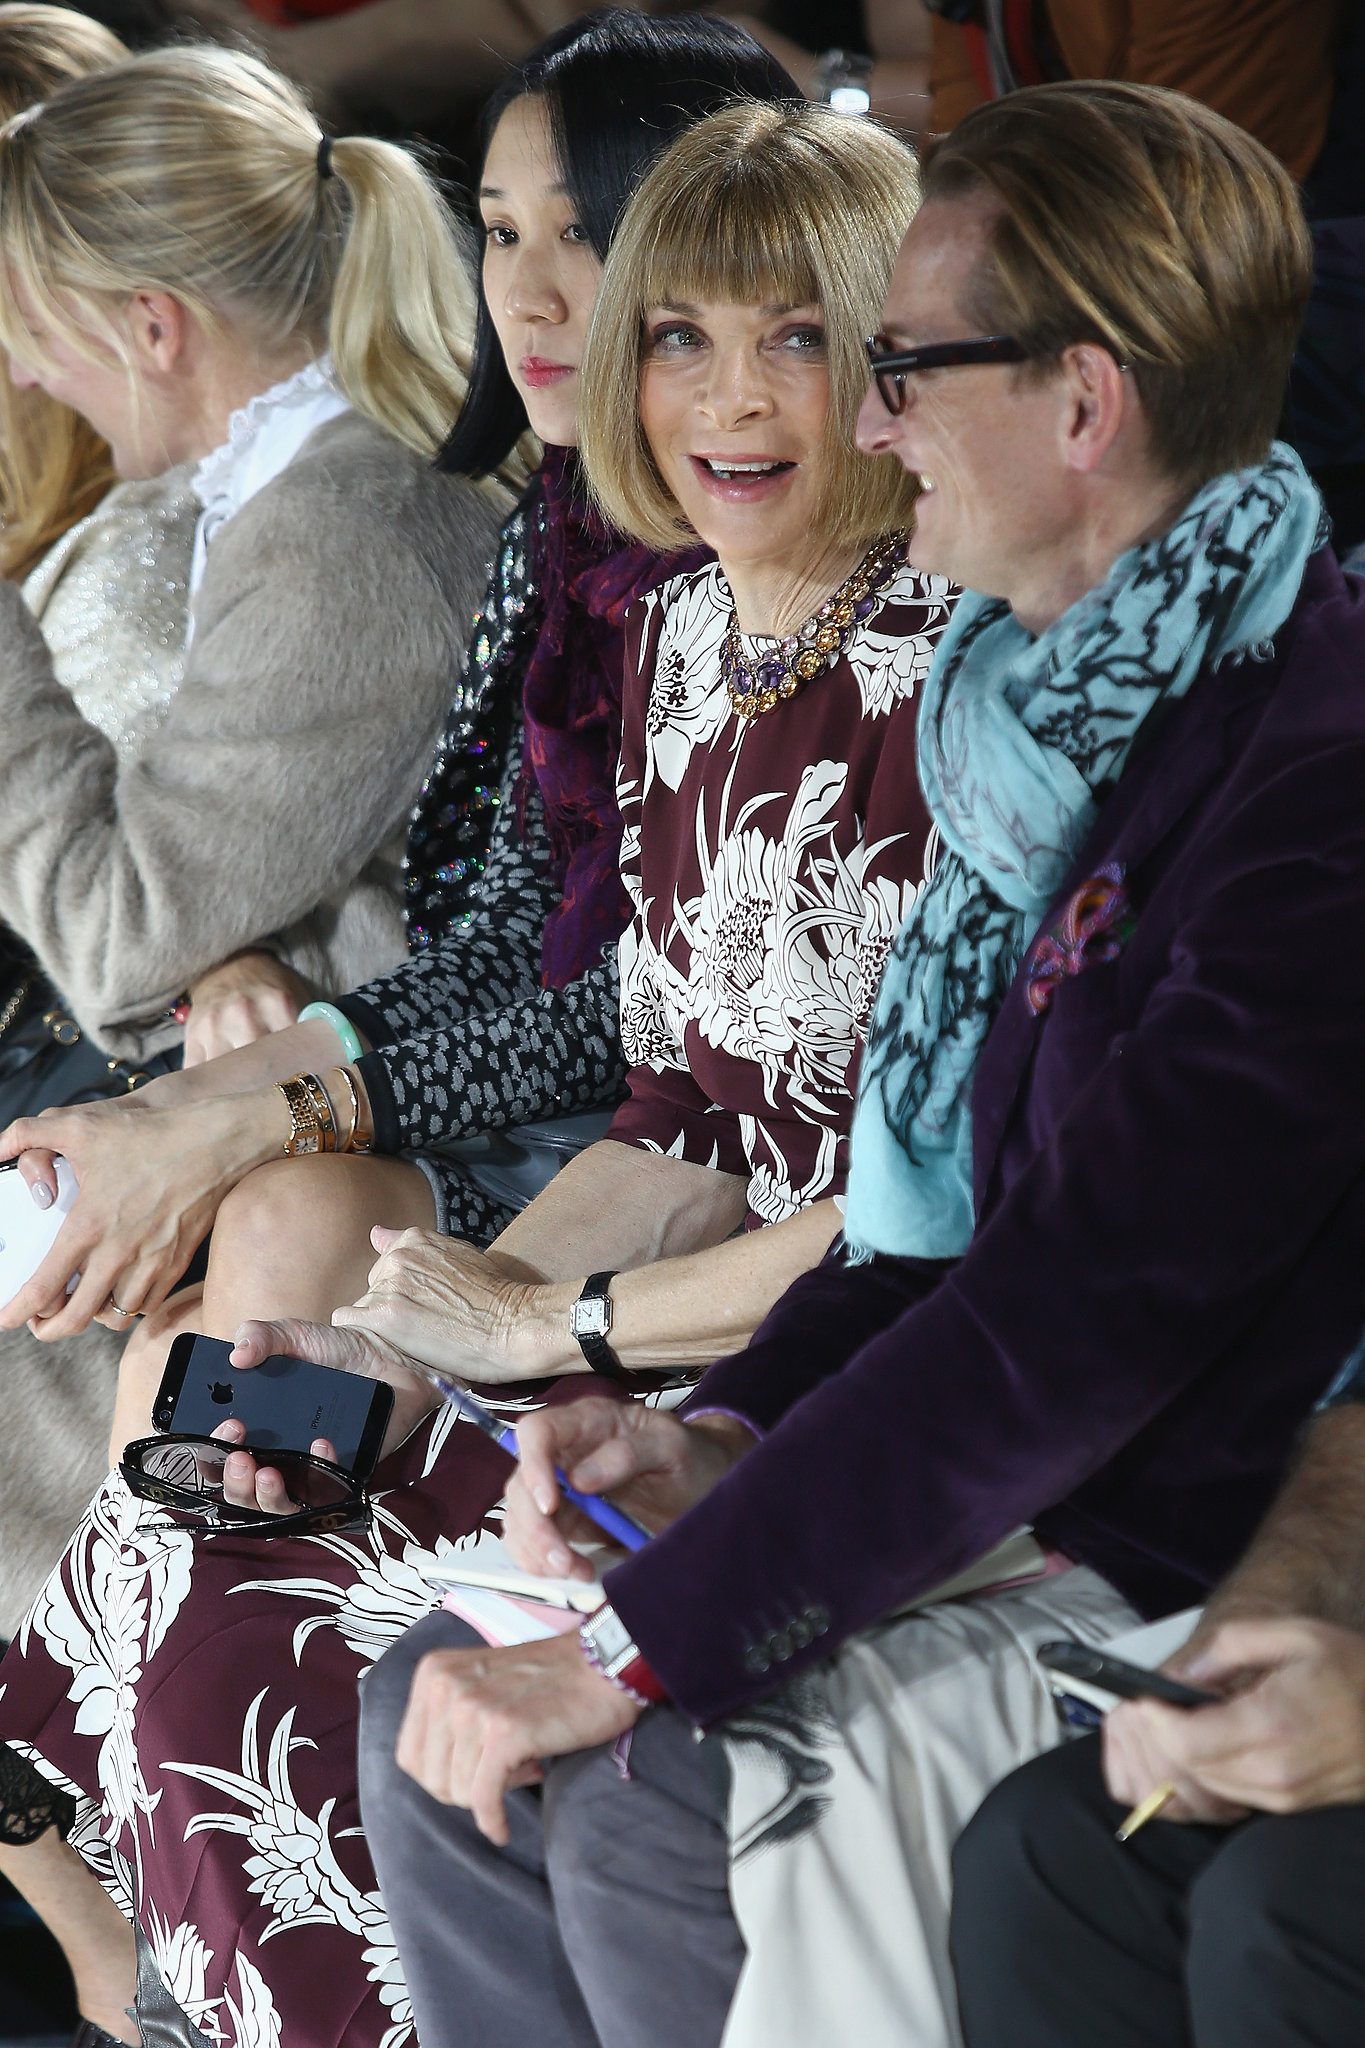 Anna Wintour was in attendance at Mary Katrantzou's show.